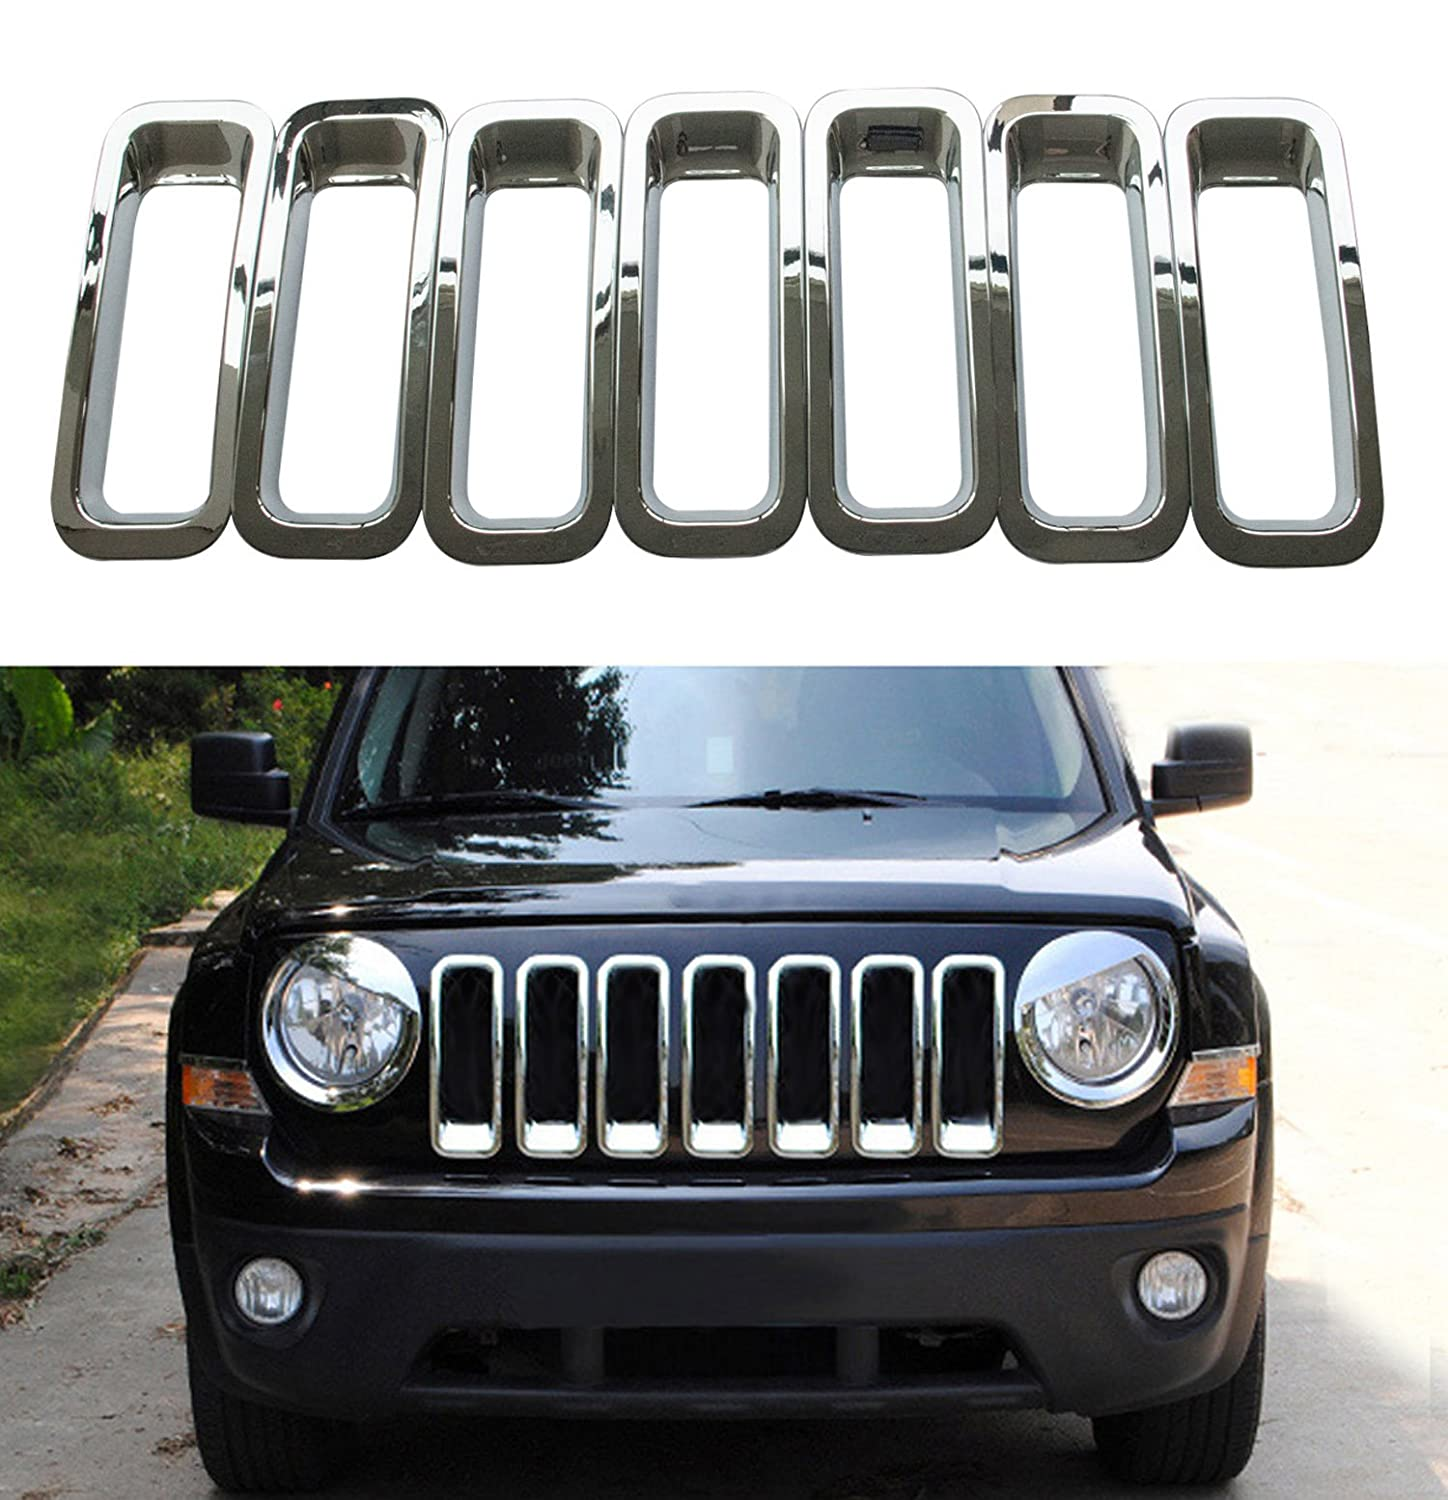 Bolaxin Jeep Patriot Black Chrome Front Grille Grill Trim Kits Set of 9(Angry Bird Style 9pcs) audio-electronic. TD